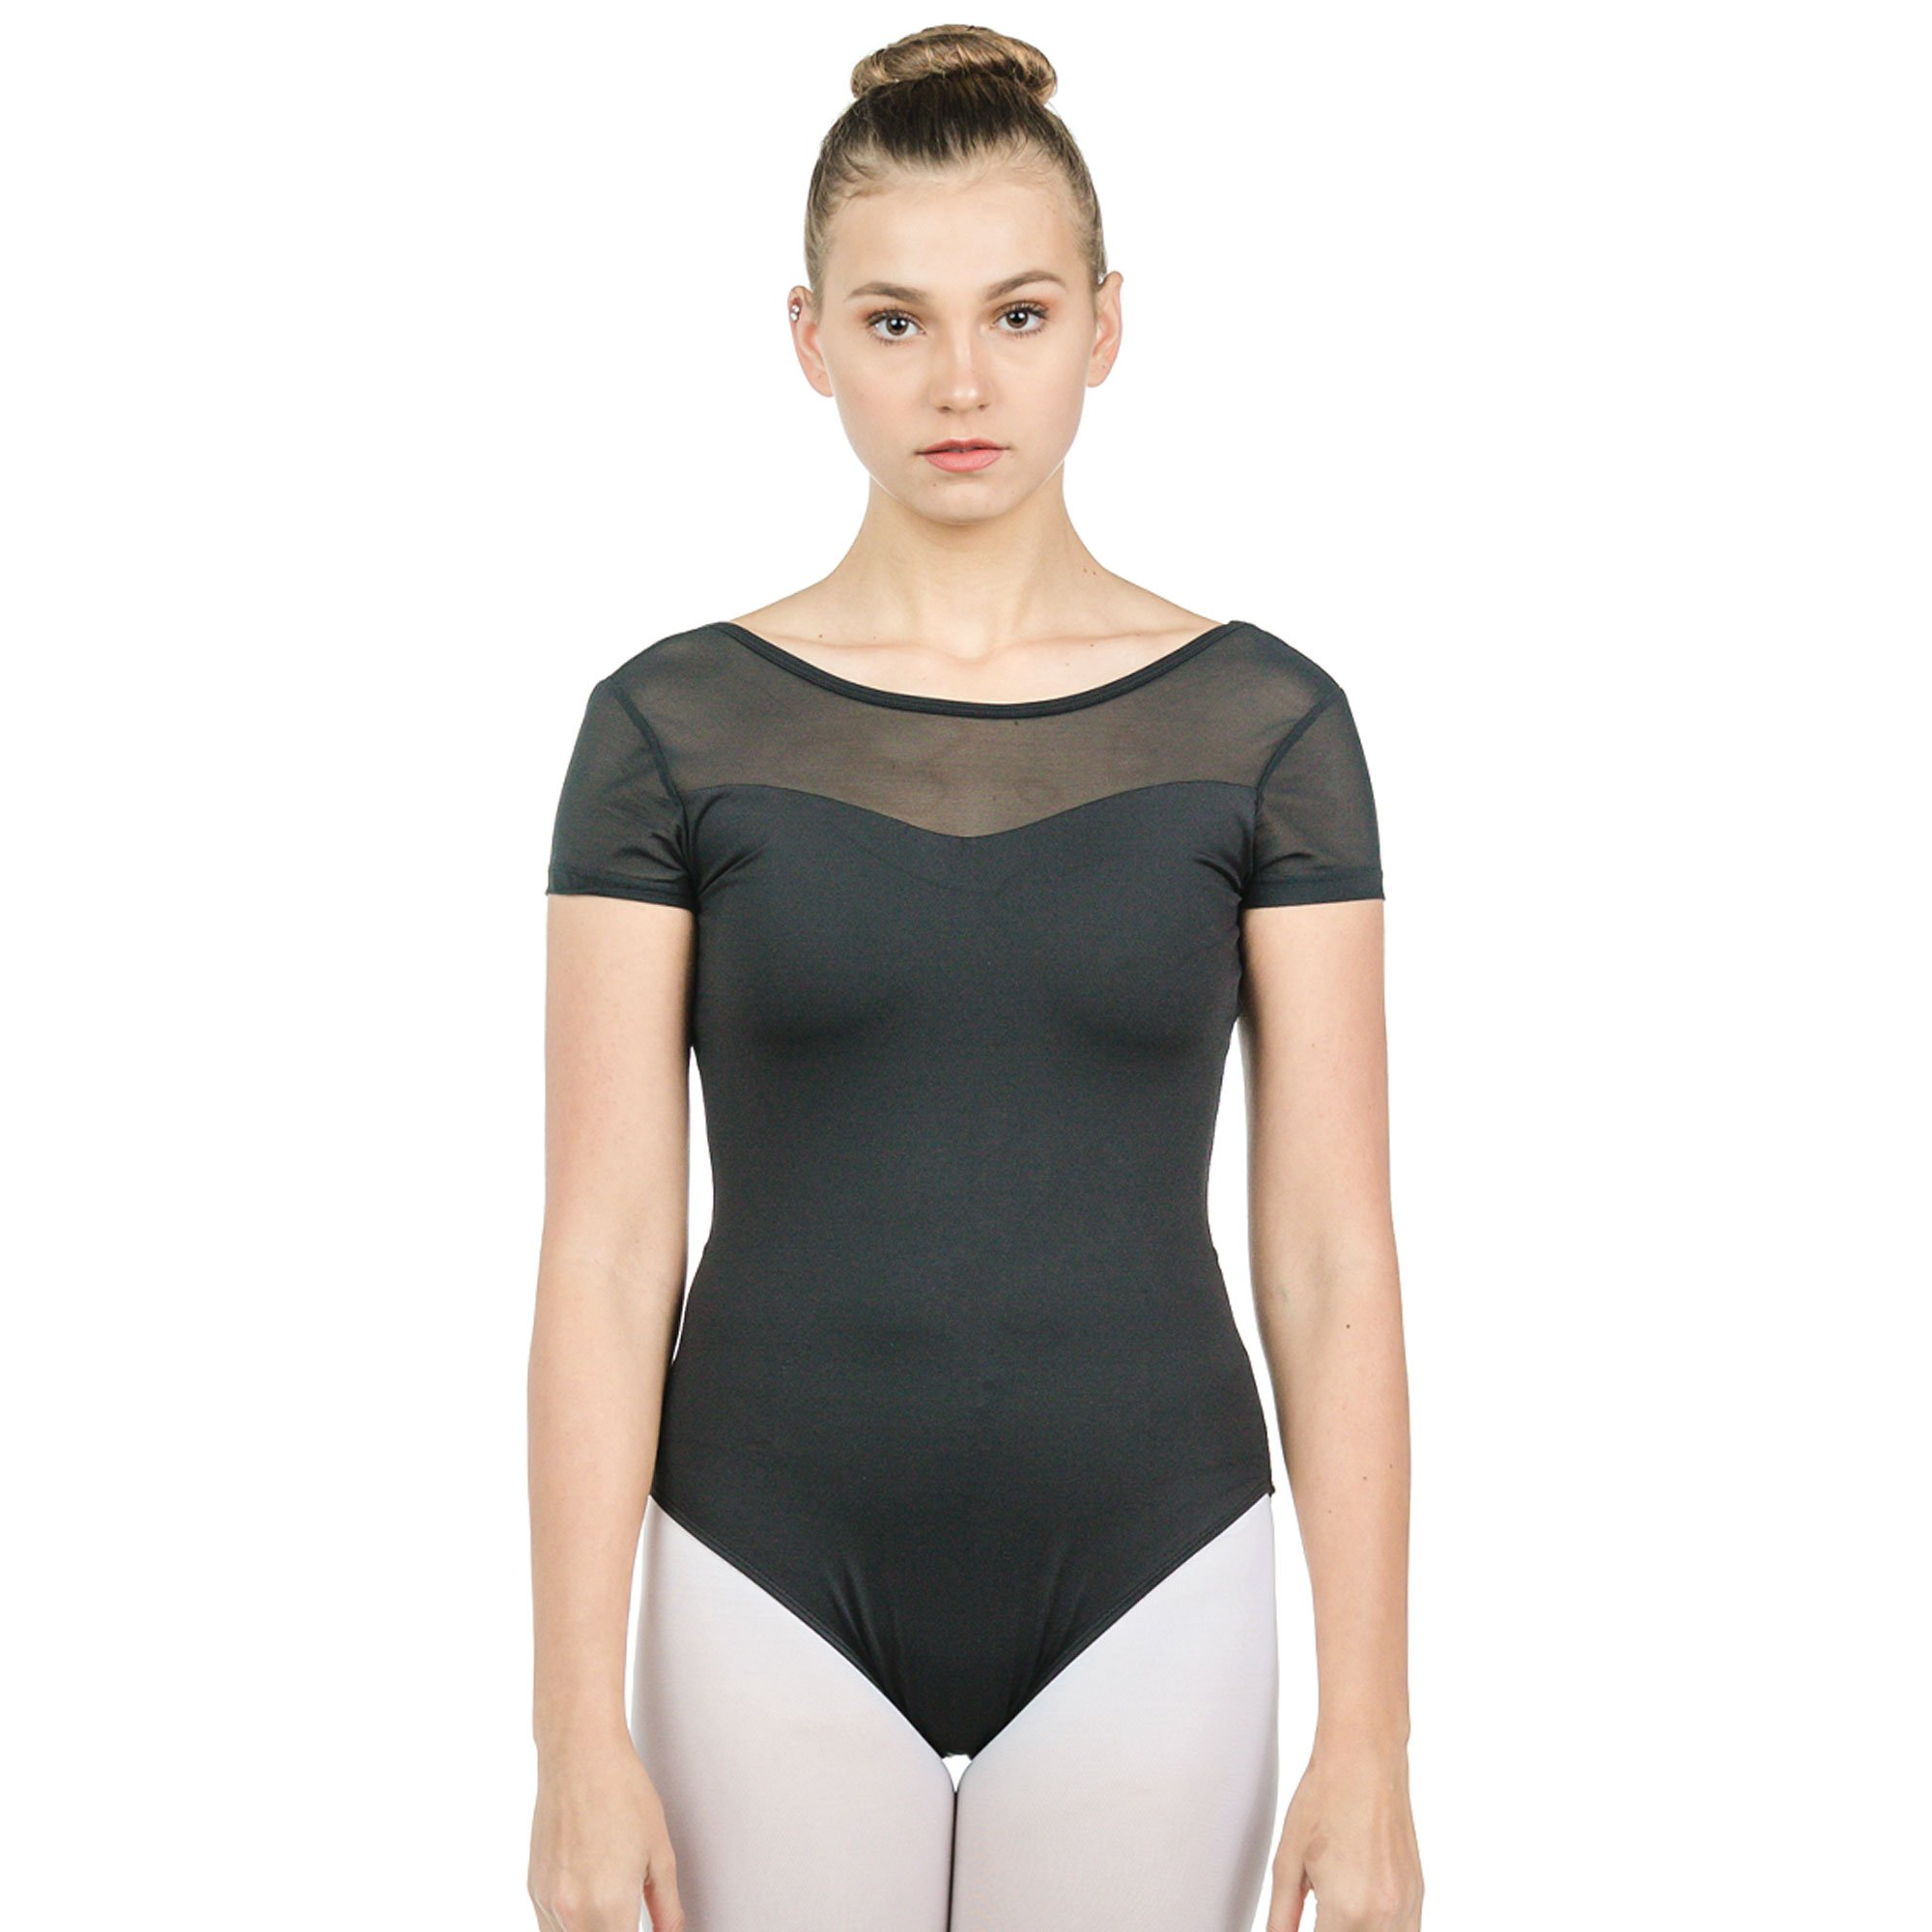 Baiwu Adult Cap Sleeve Mesh Up Round Back Leotard